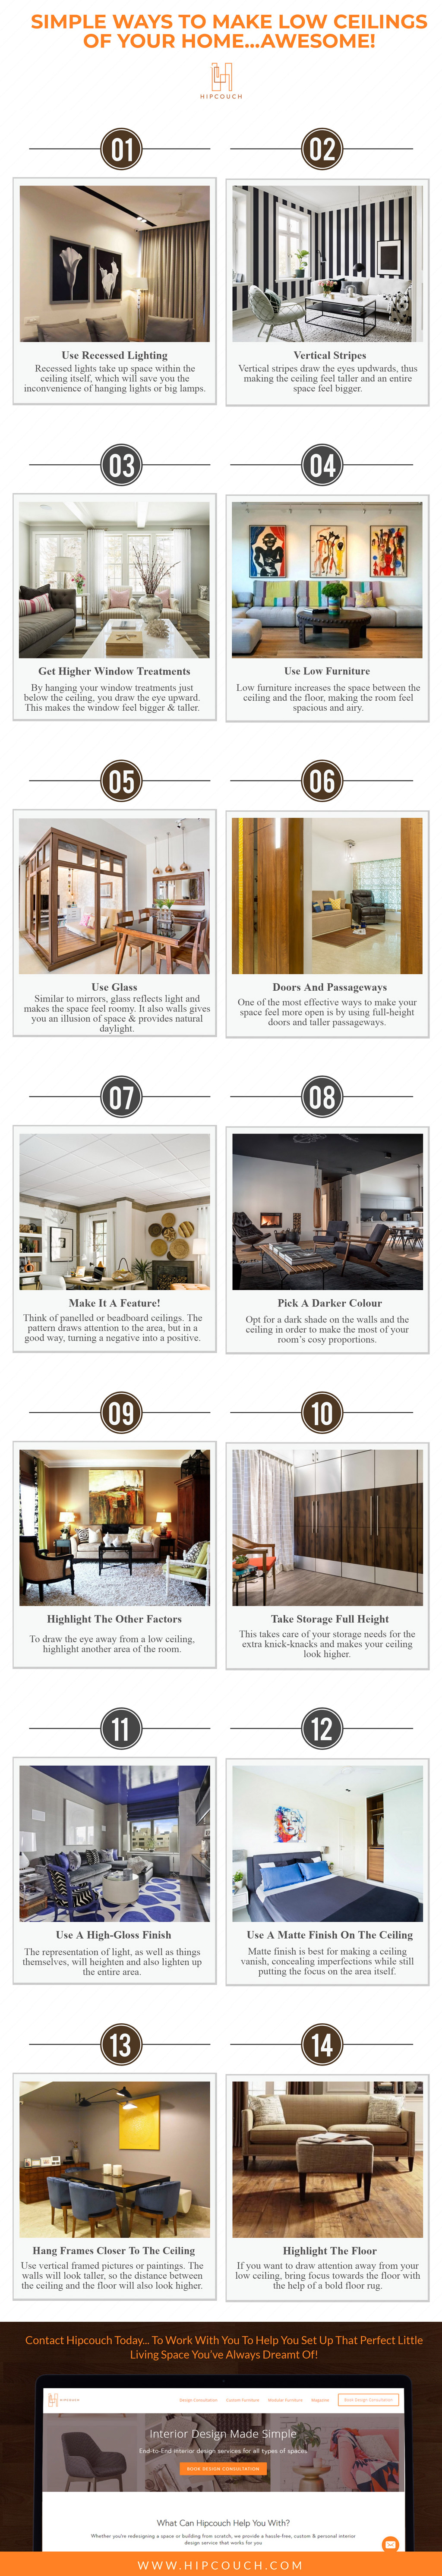 Simple Ways To Make Low Ceilings of Your Home…Awesome!